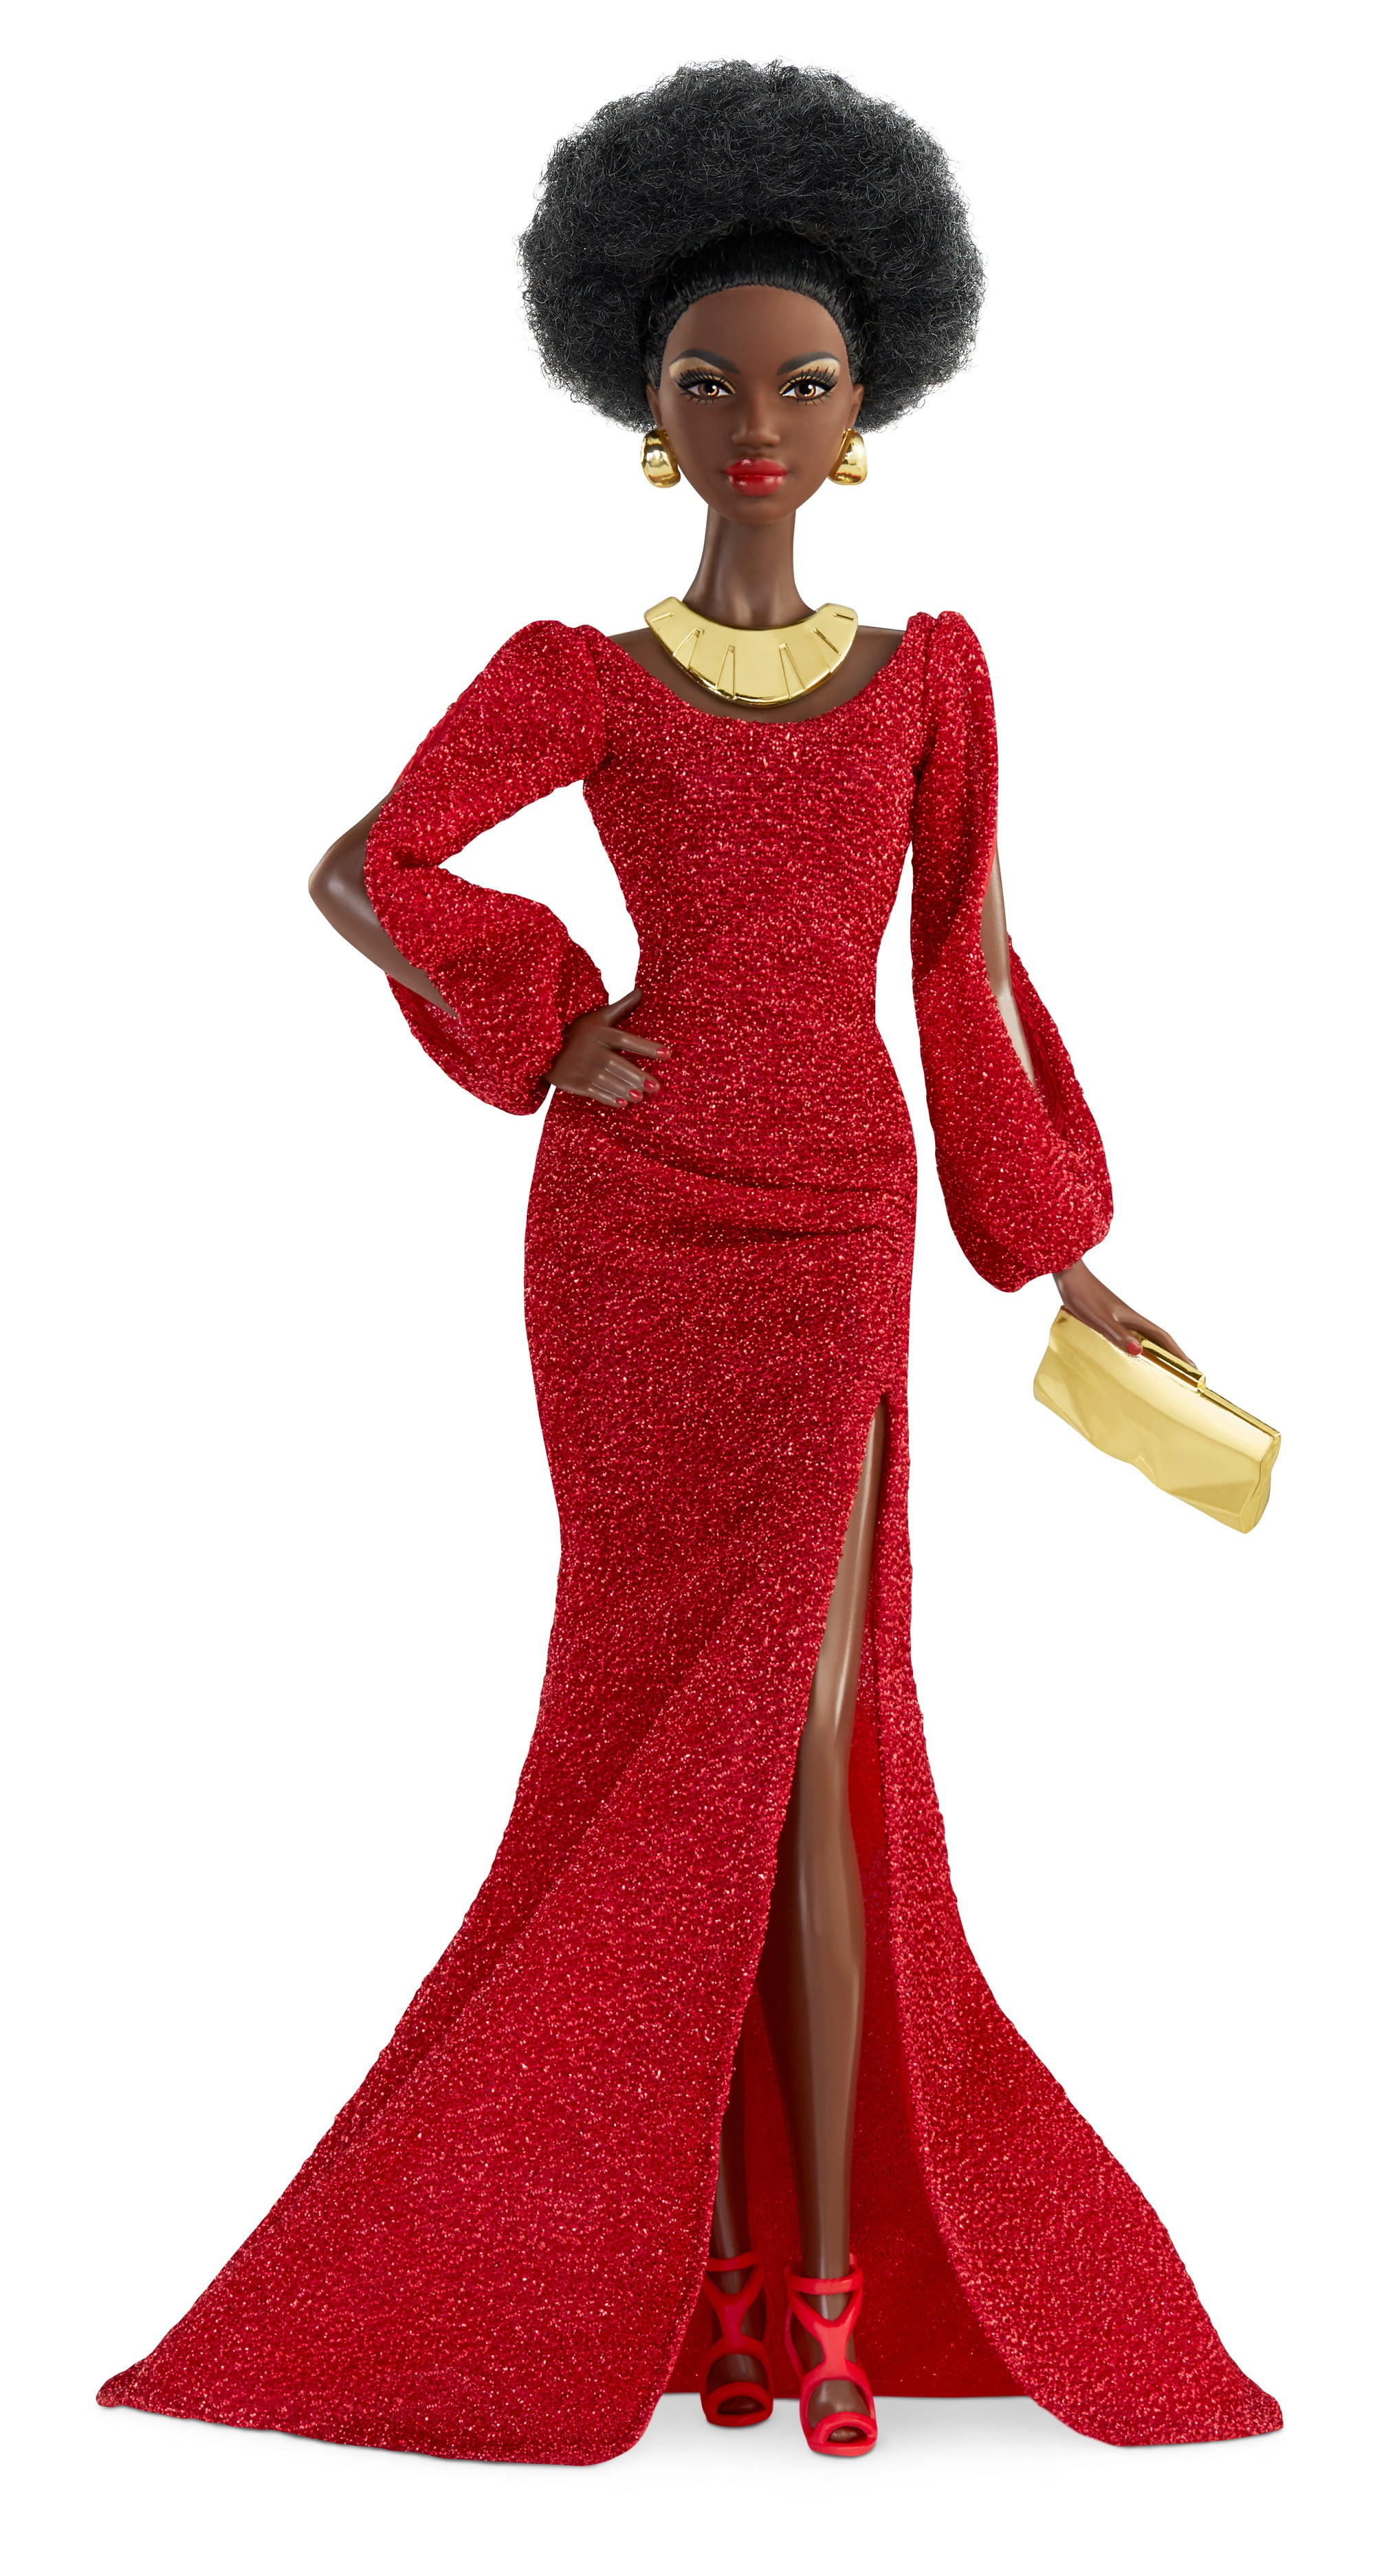 Barbie Signature 40th Anniversary First Black Barbie Doll in Red Gown with Doll Stand and Certificate of Authenticity - Walmart.com